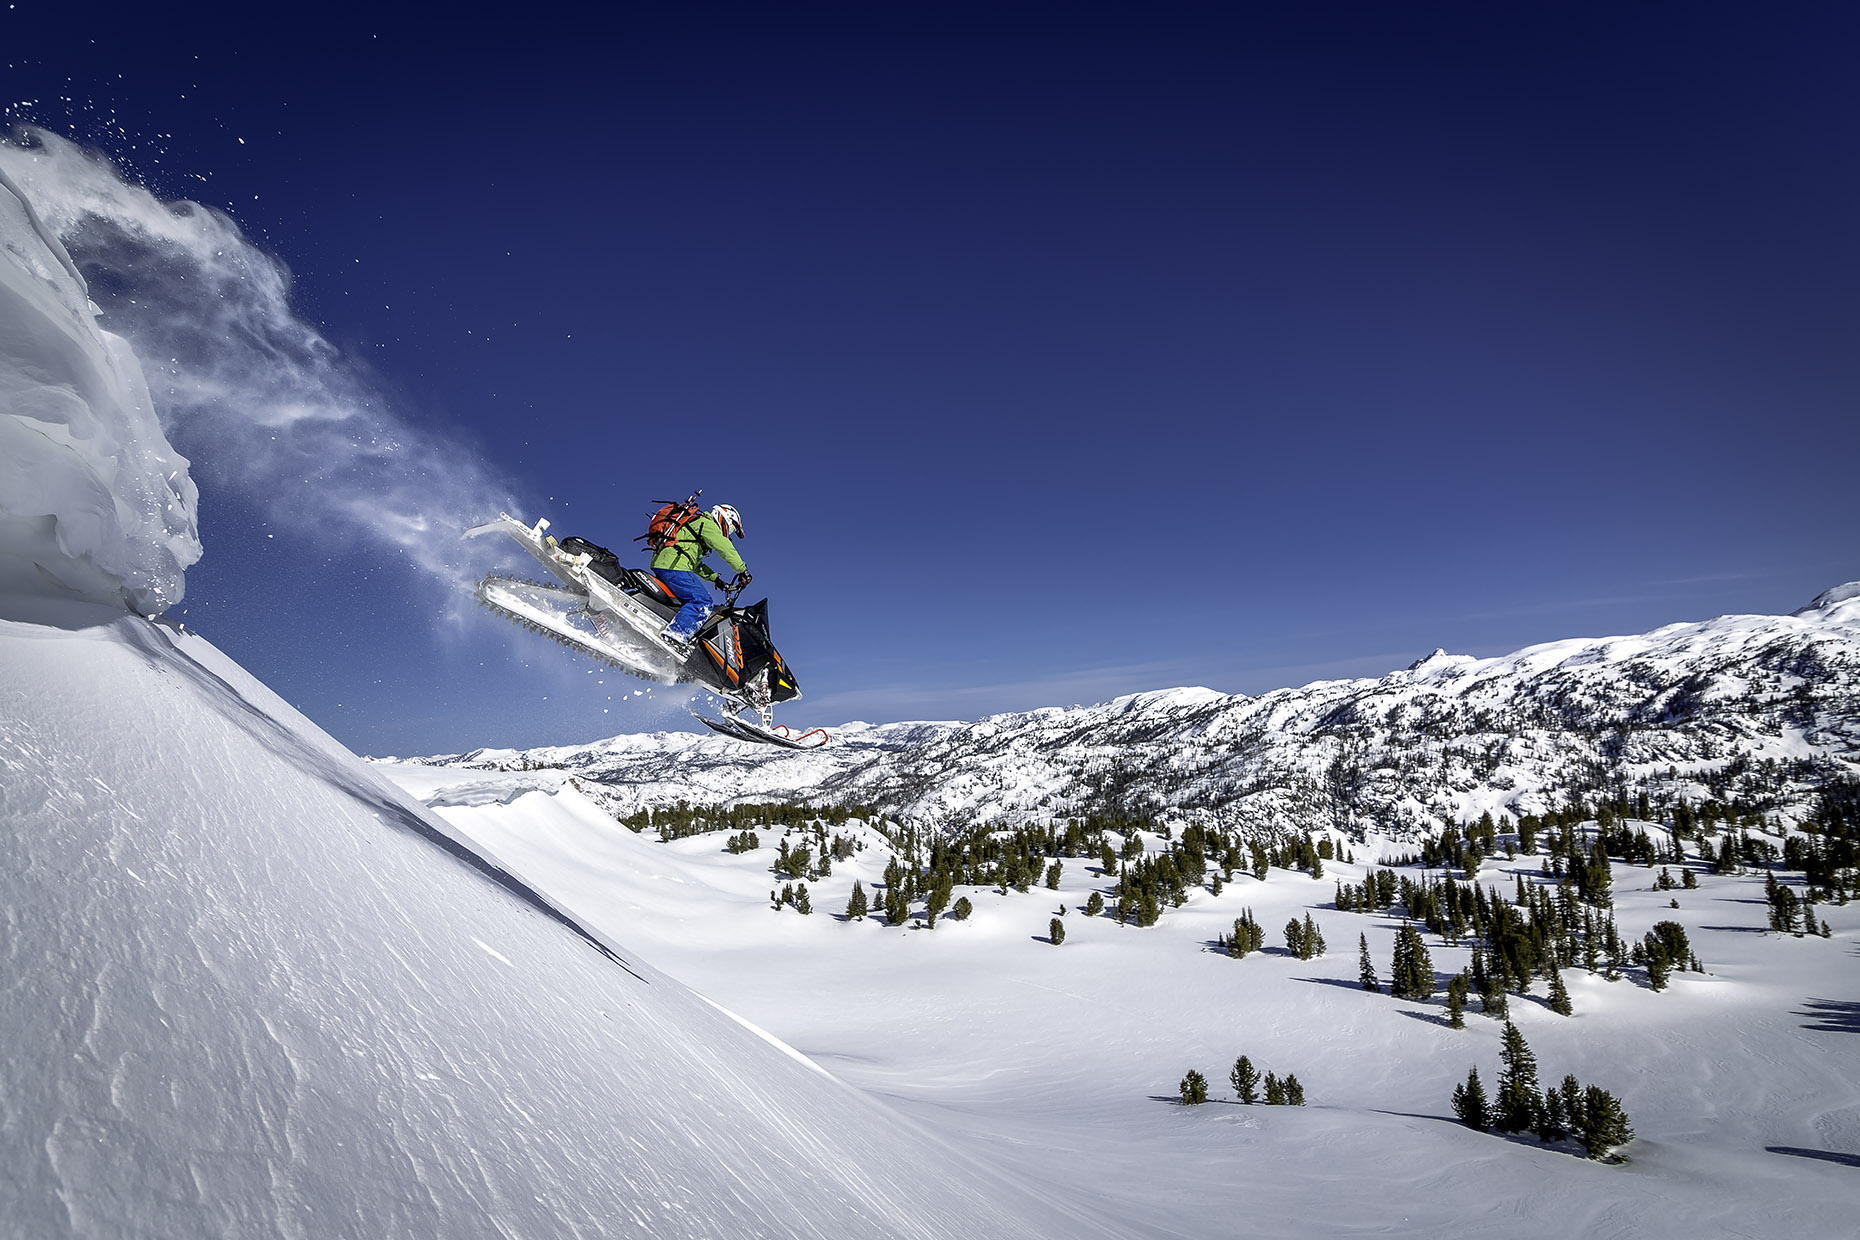 DAP sport snowmobile CJ Cooke City powder jump